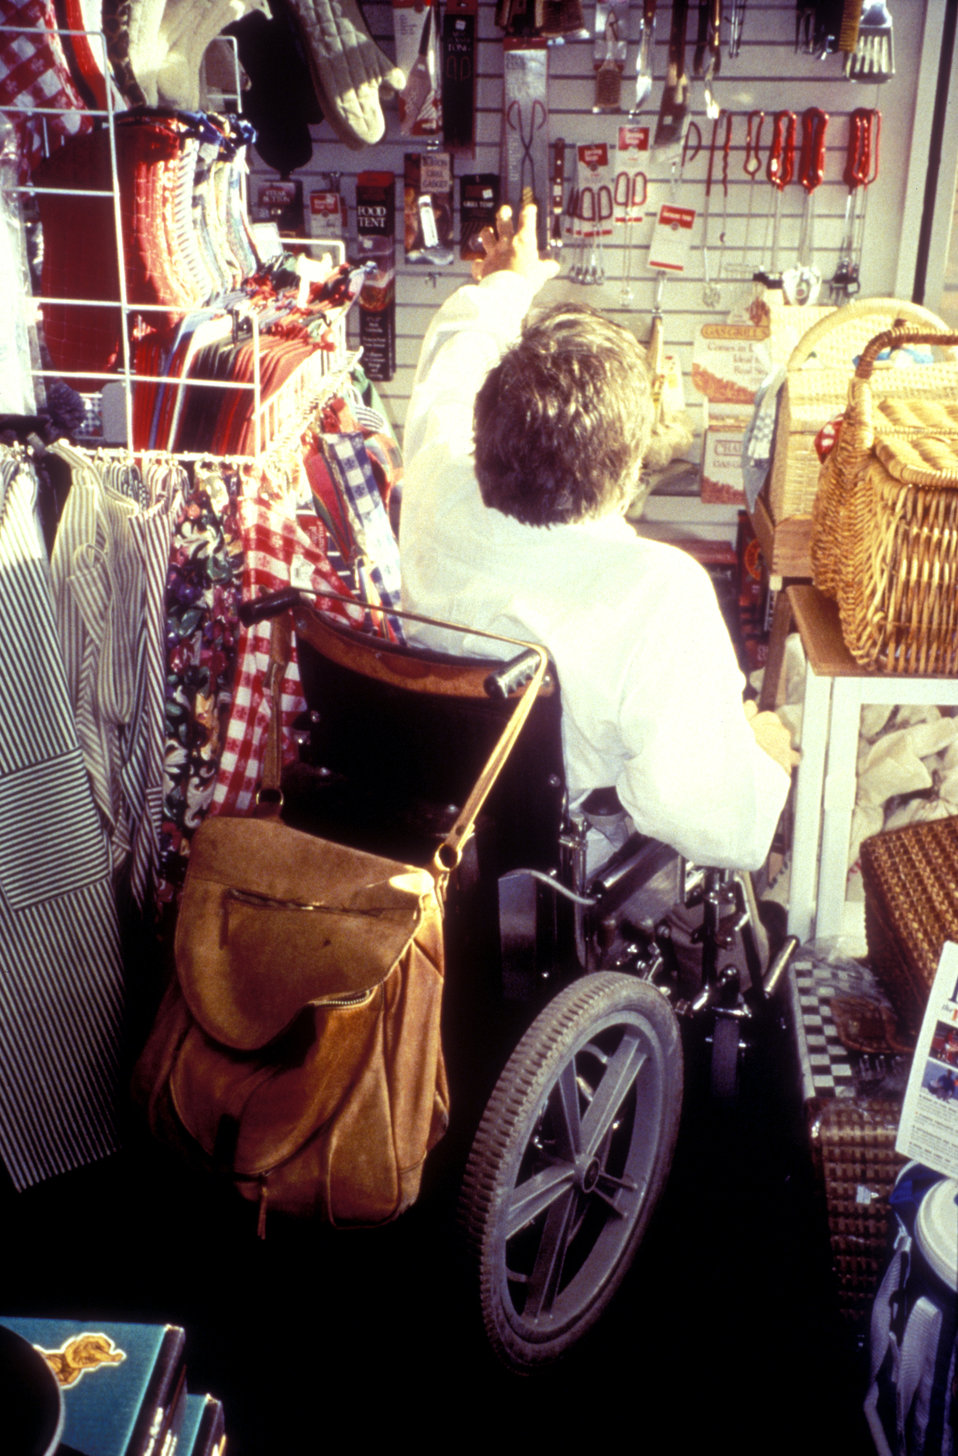 This 1988 image depicted a man seated in his motorized wheelchair, while browsing a retail store's inventory, which appeared to be cooking a